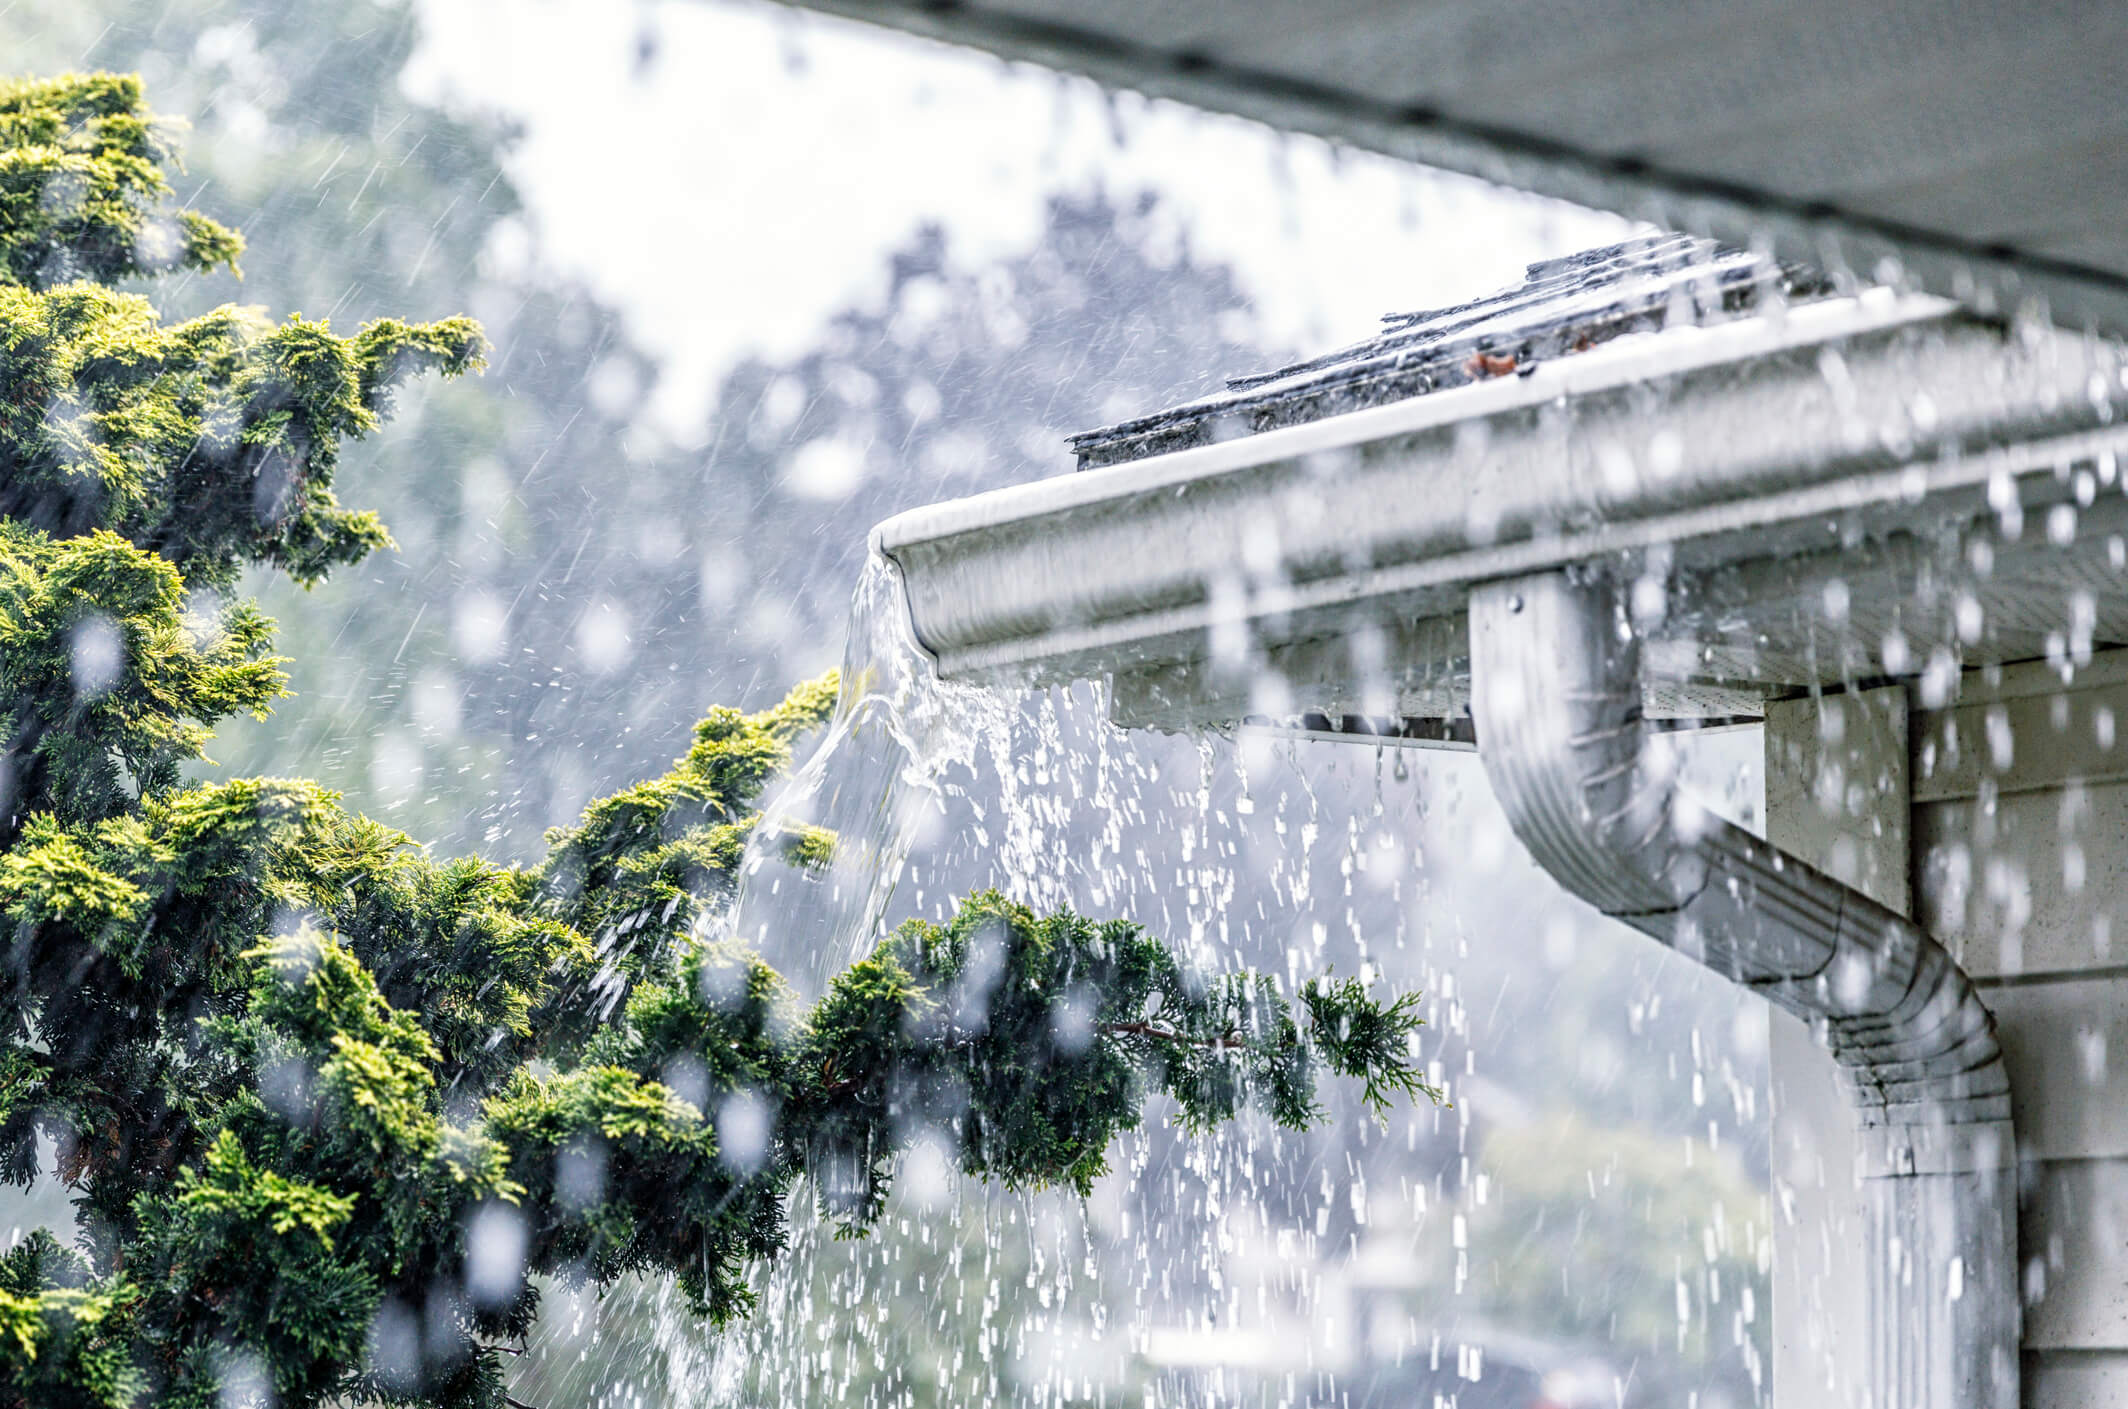 Eaves of a house in heavy rain